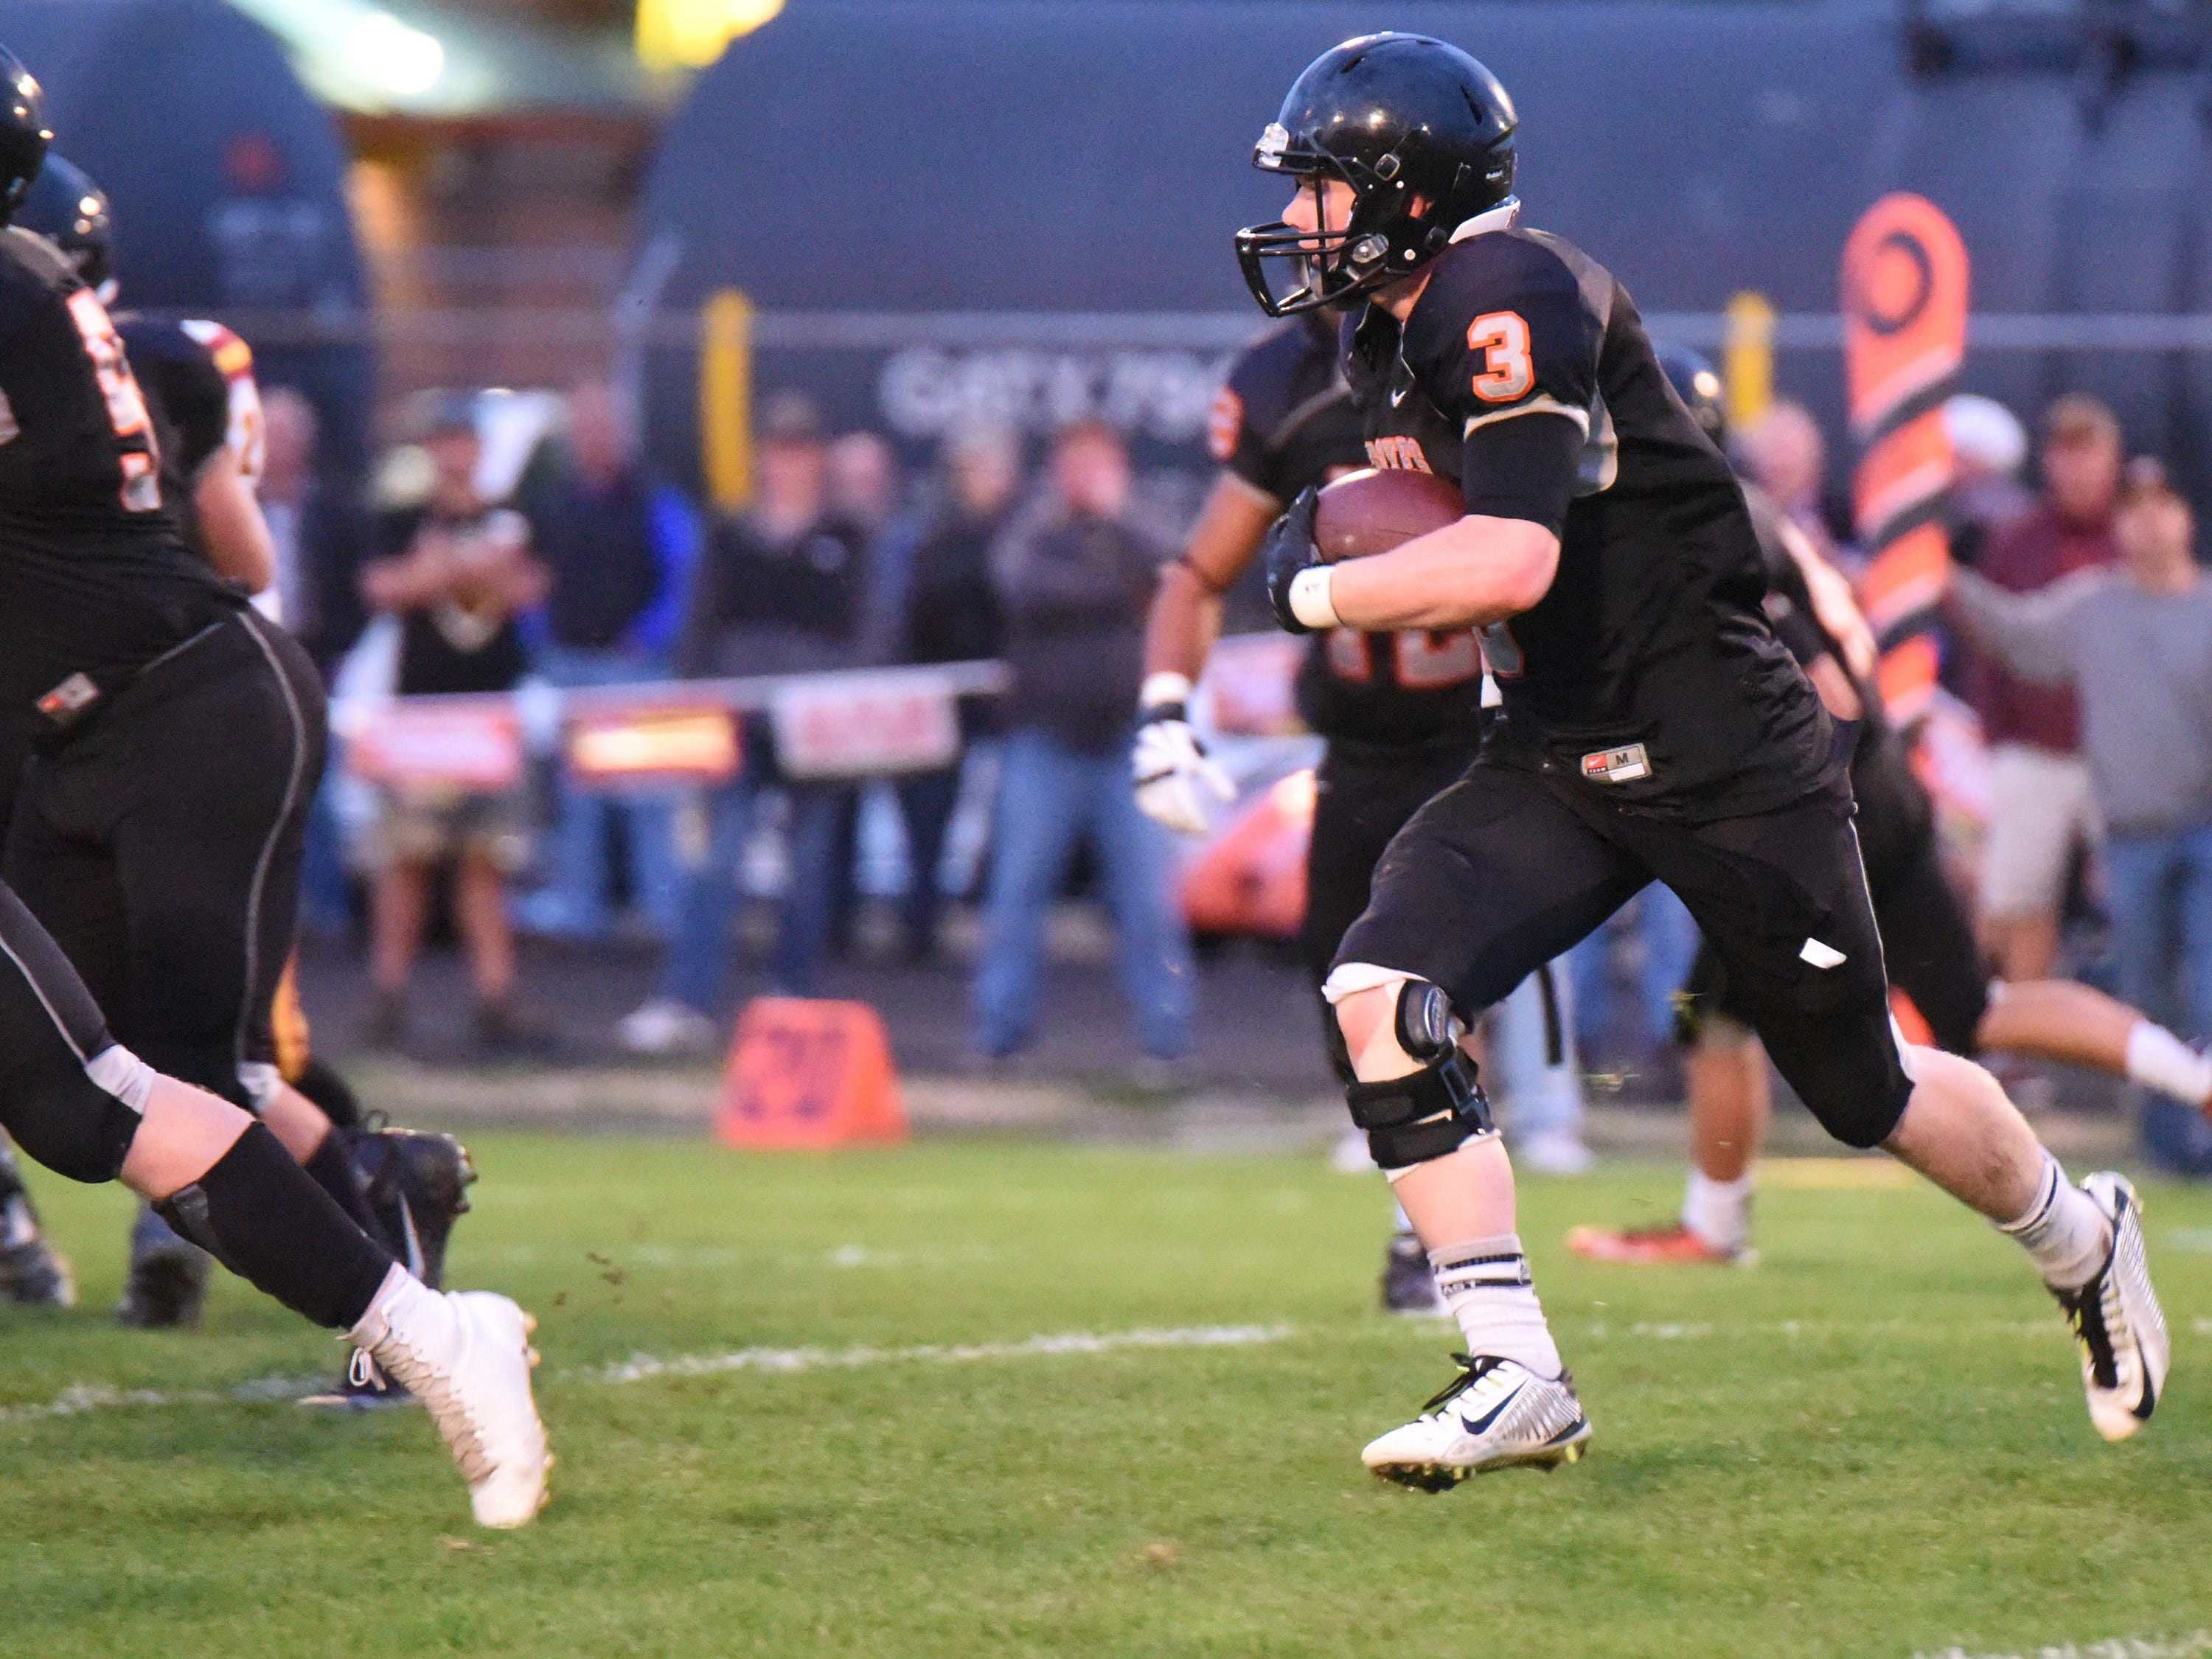 Silverton High School plays its homecoming game against Crescent Valley with an enthusiastic crowd on Friday Sept. 25.